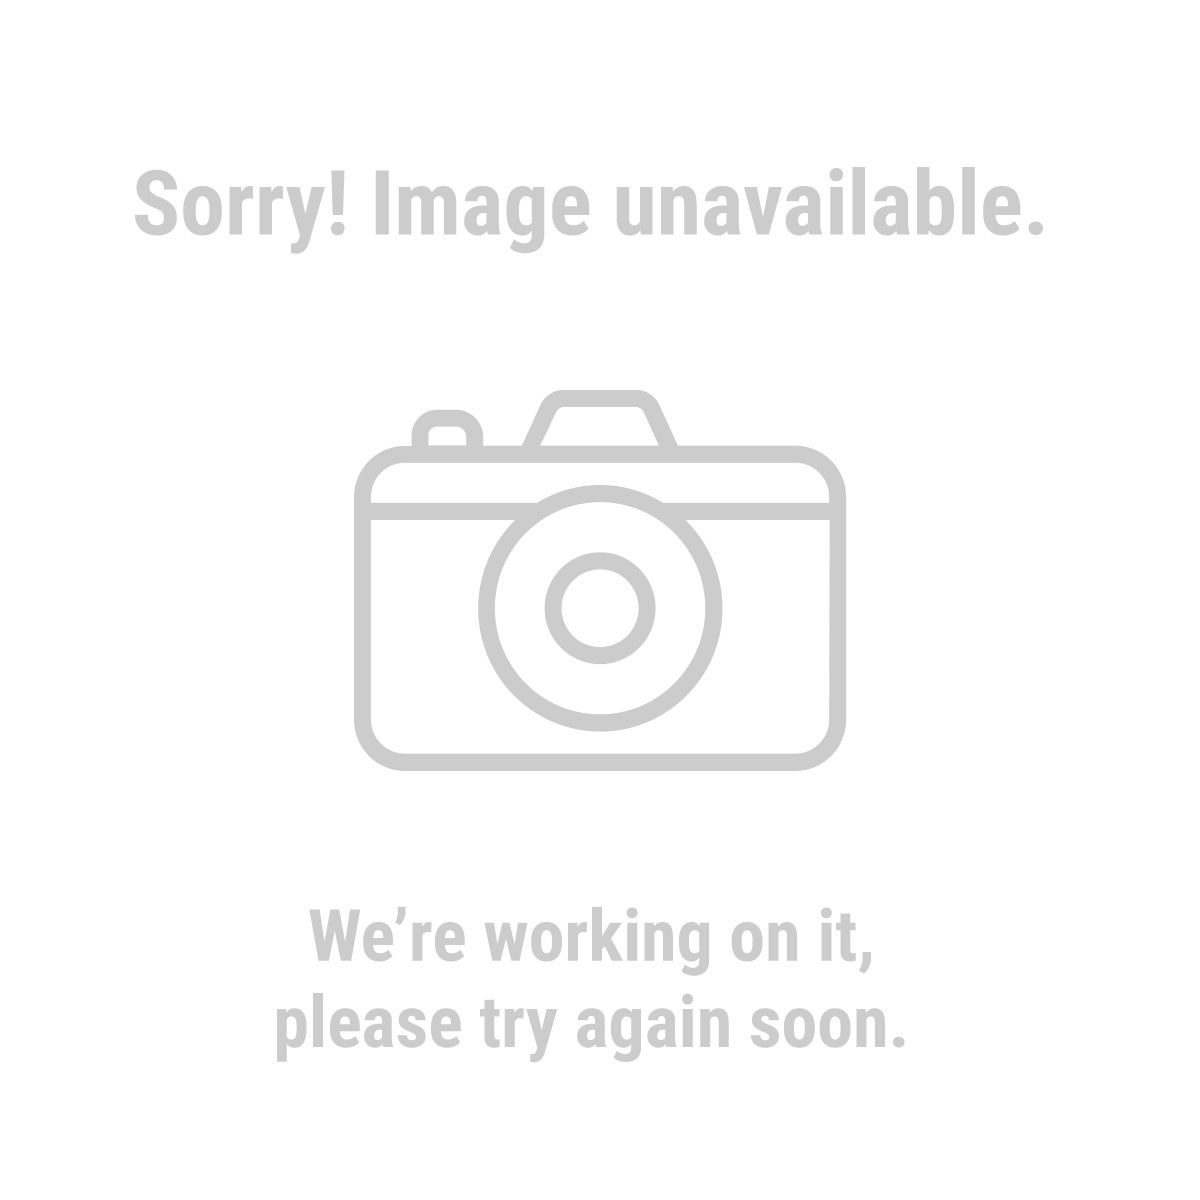 Central Pneumatic 98580 Pistol Grip Air Shears